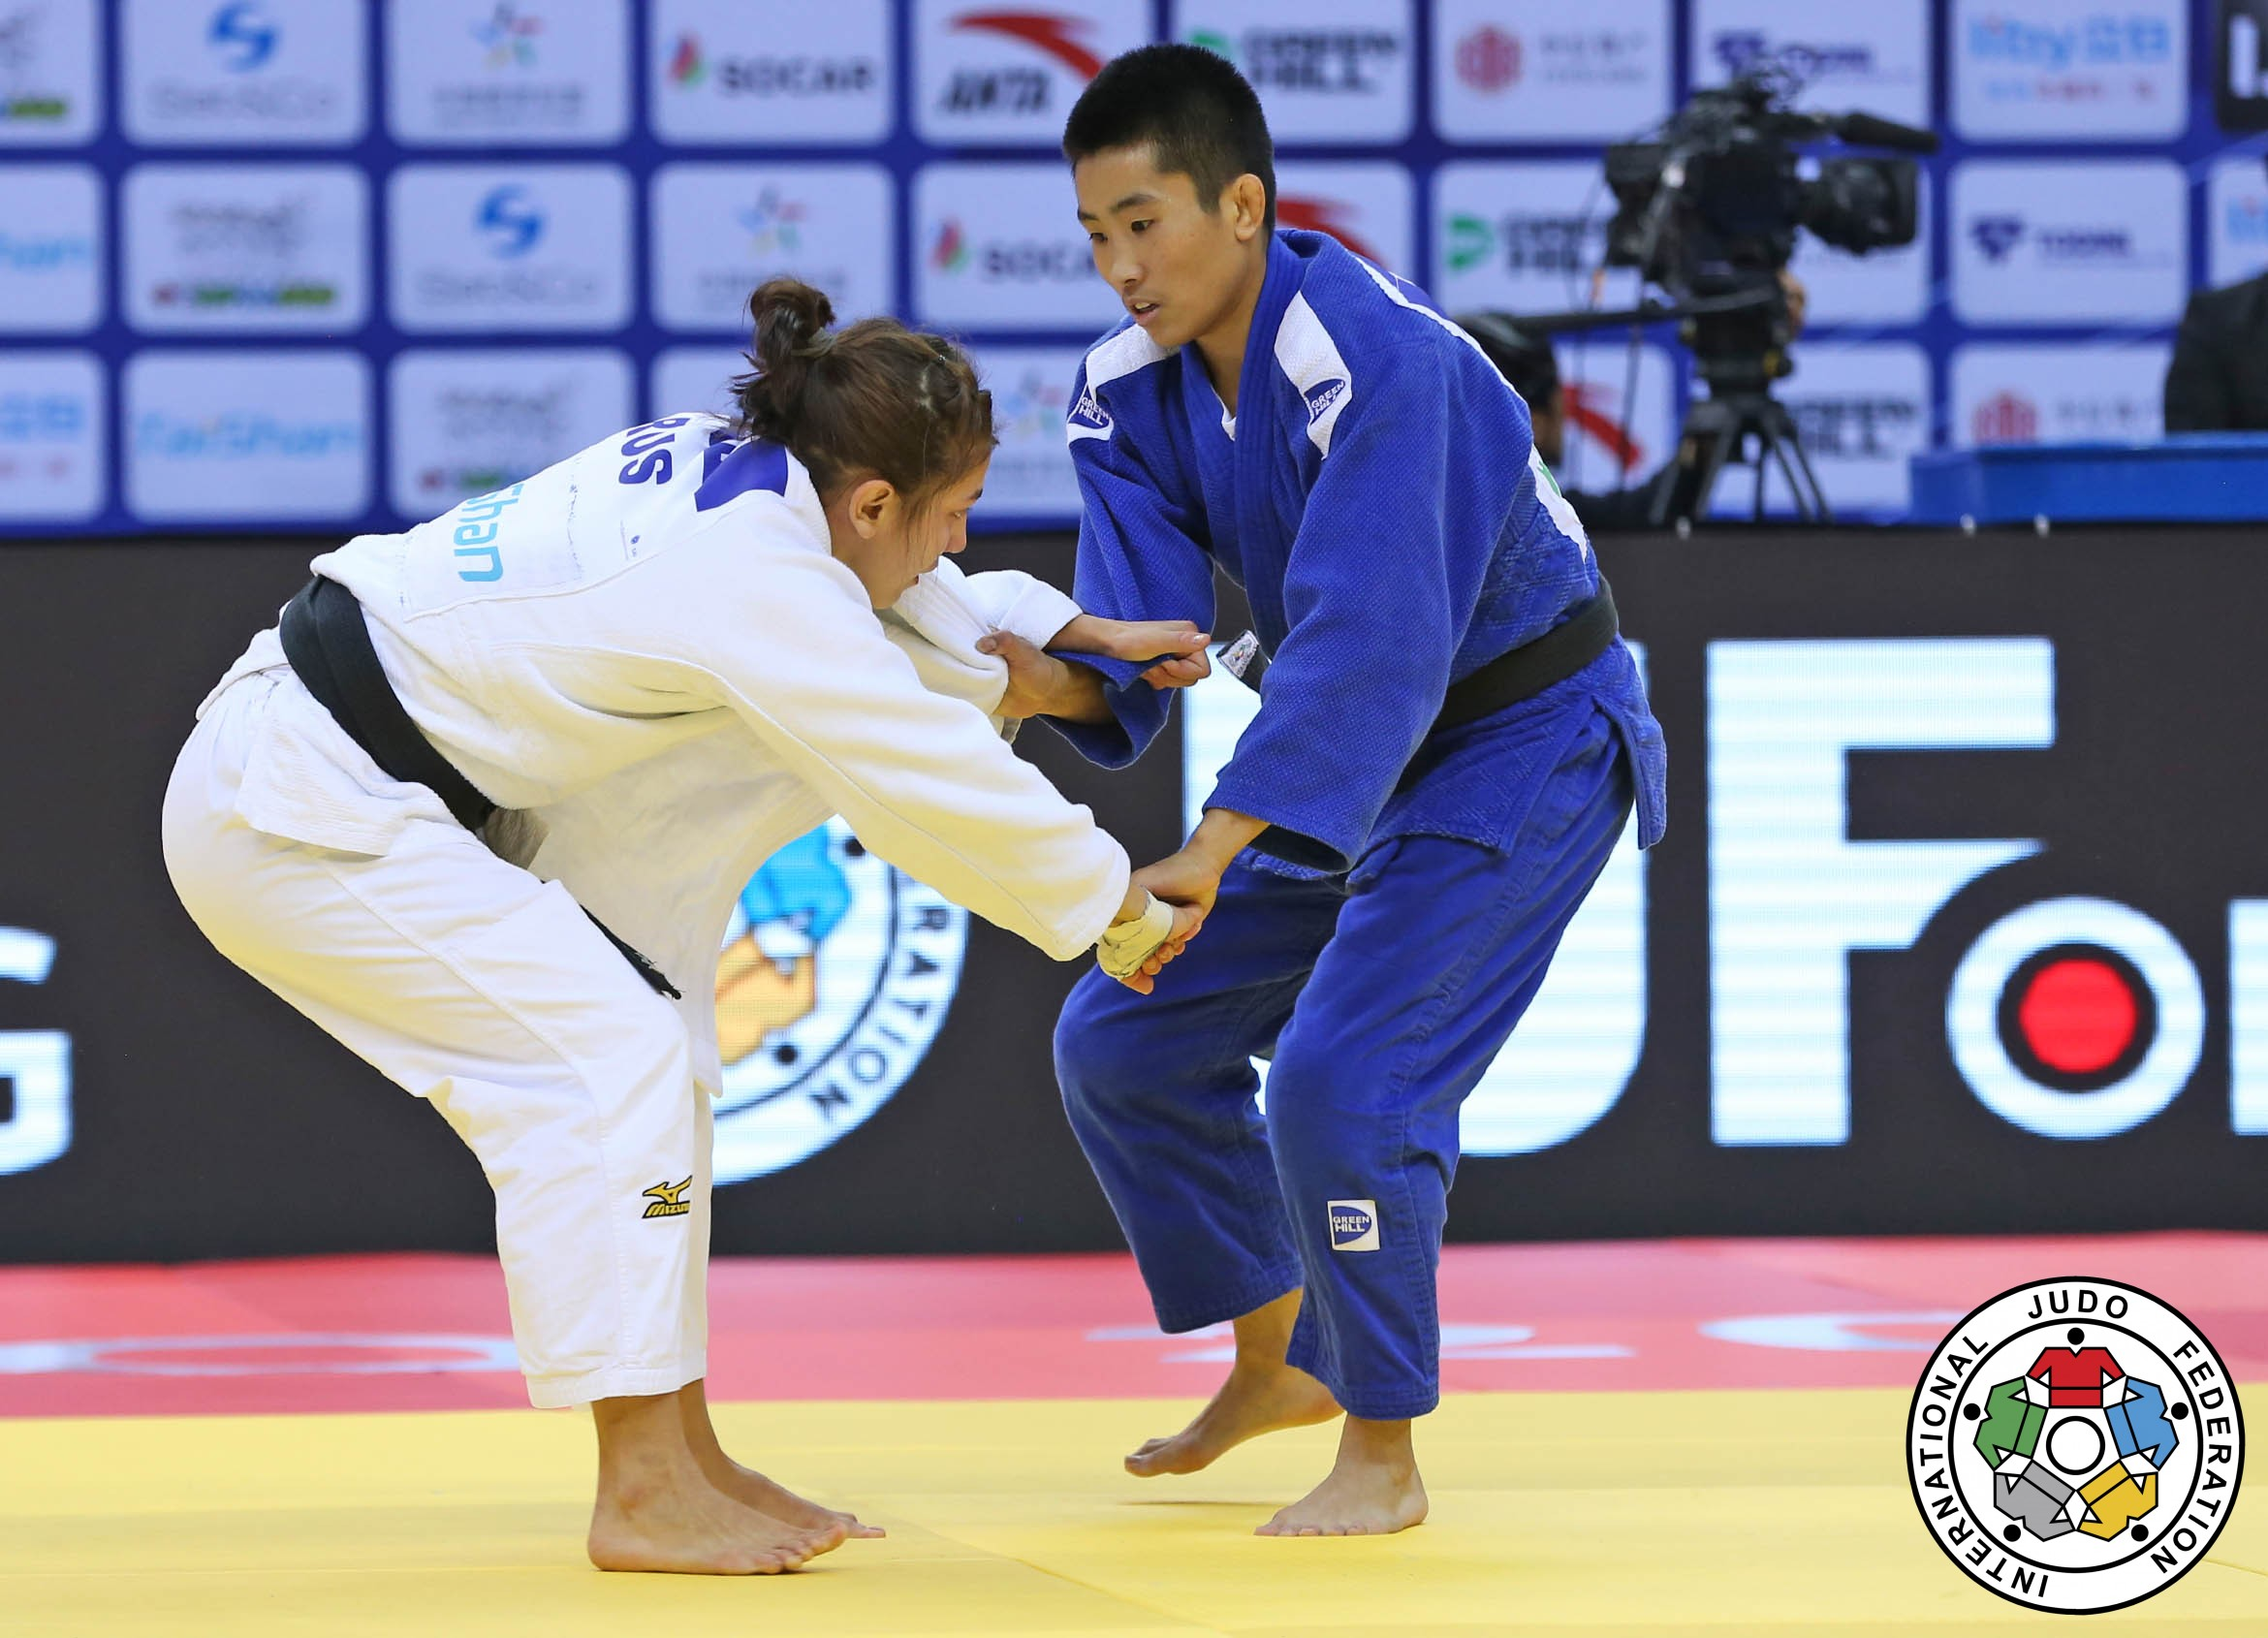 20161118_QingdaoGP_IJF_action_52 FINAL chen CHEN